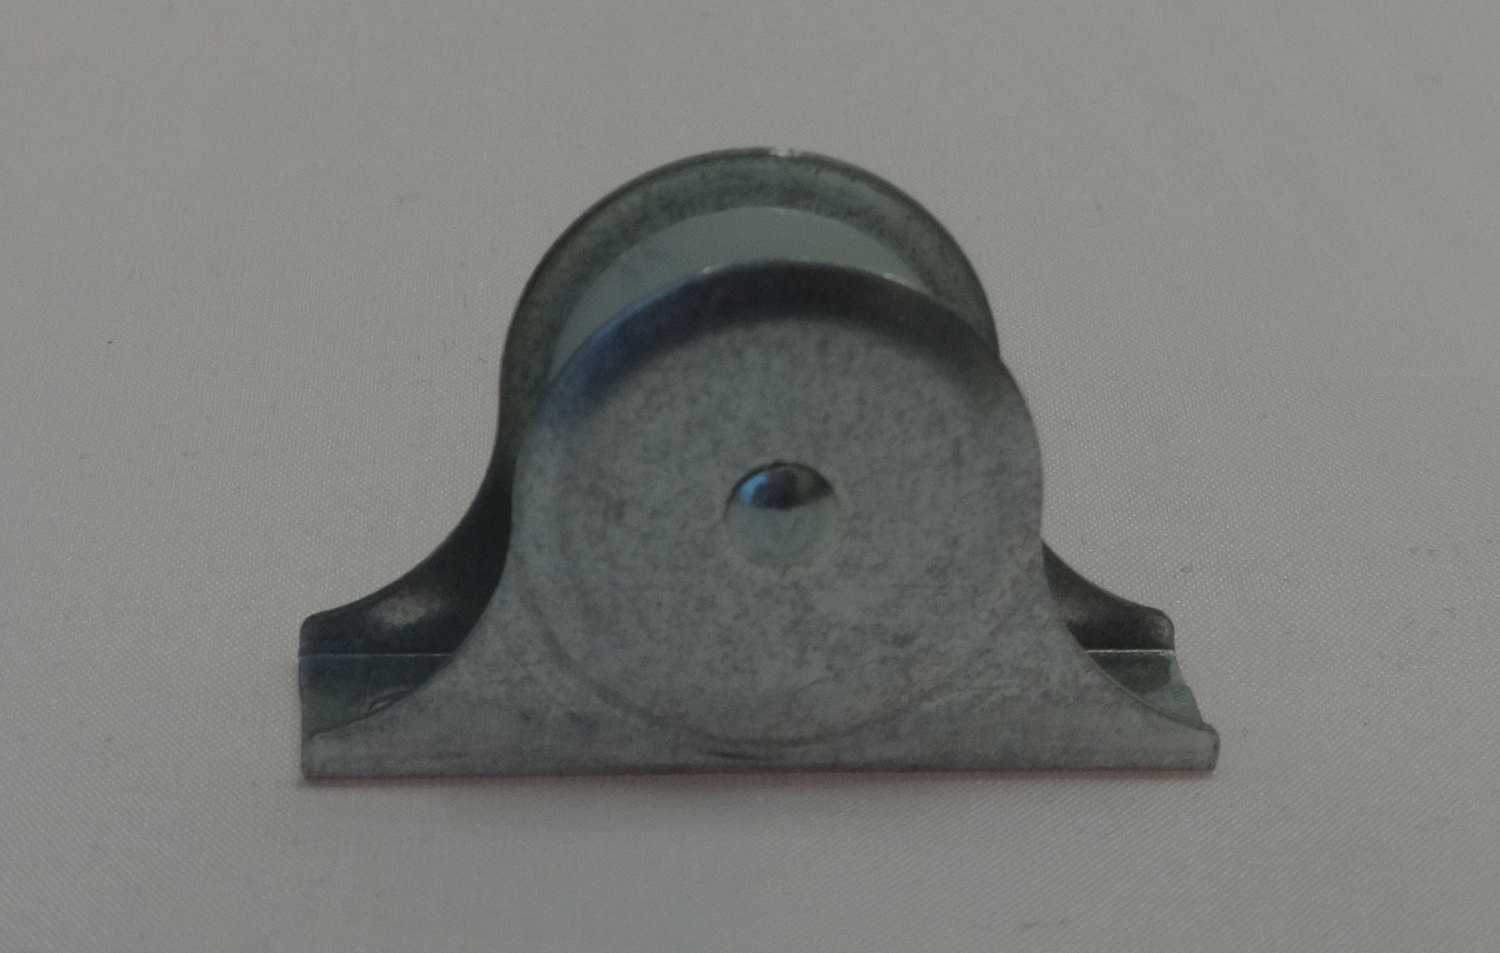 Smooth-Wheel Metal Pulley / Cord Guide  for Roman & Other Shades and More!